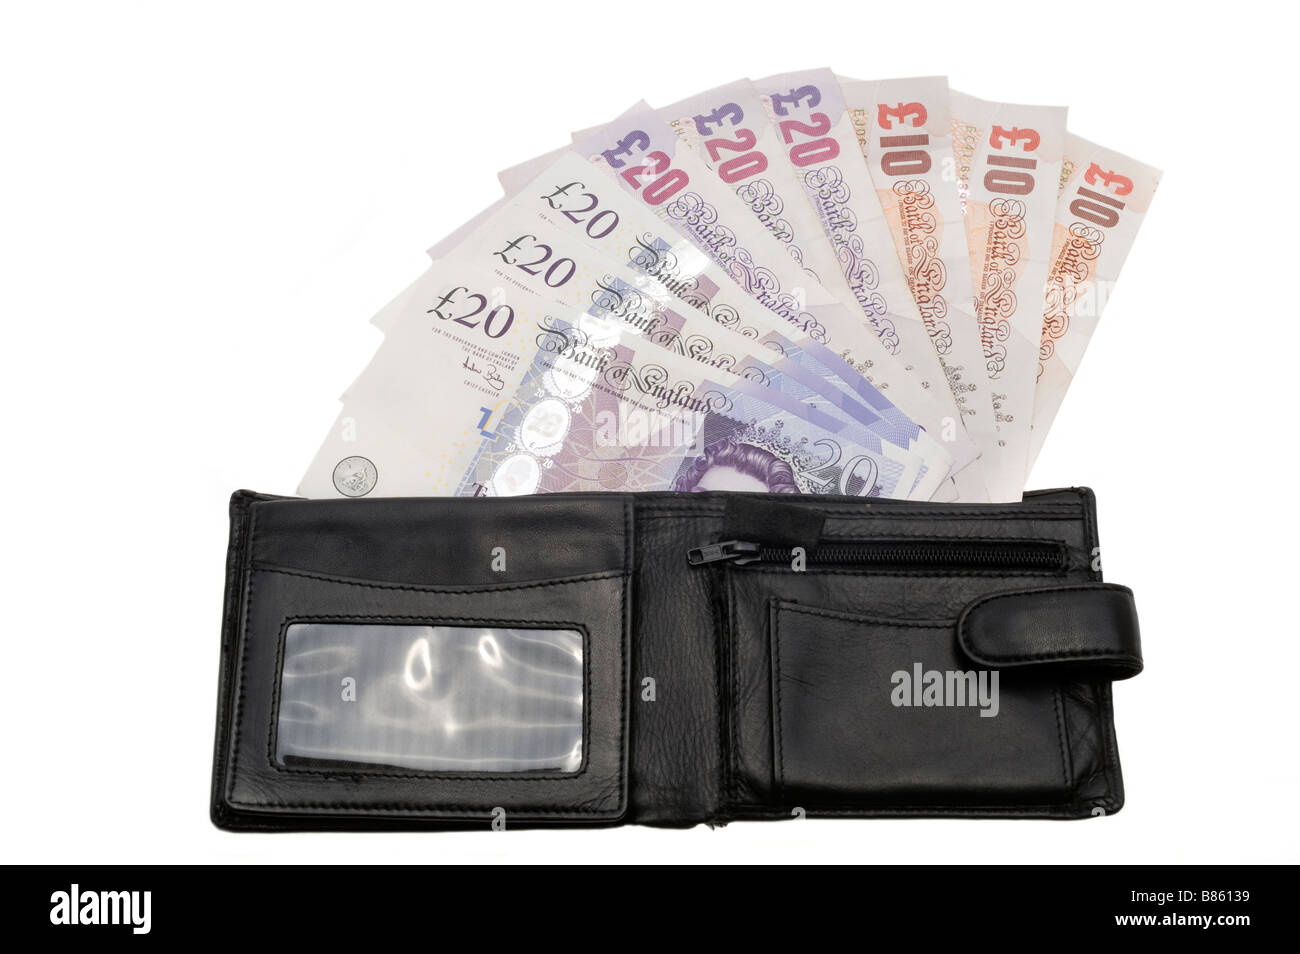 Mans black wallet spilling 10 and 20 notes.  Editorial use only - Stock Image